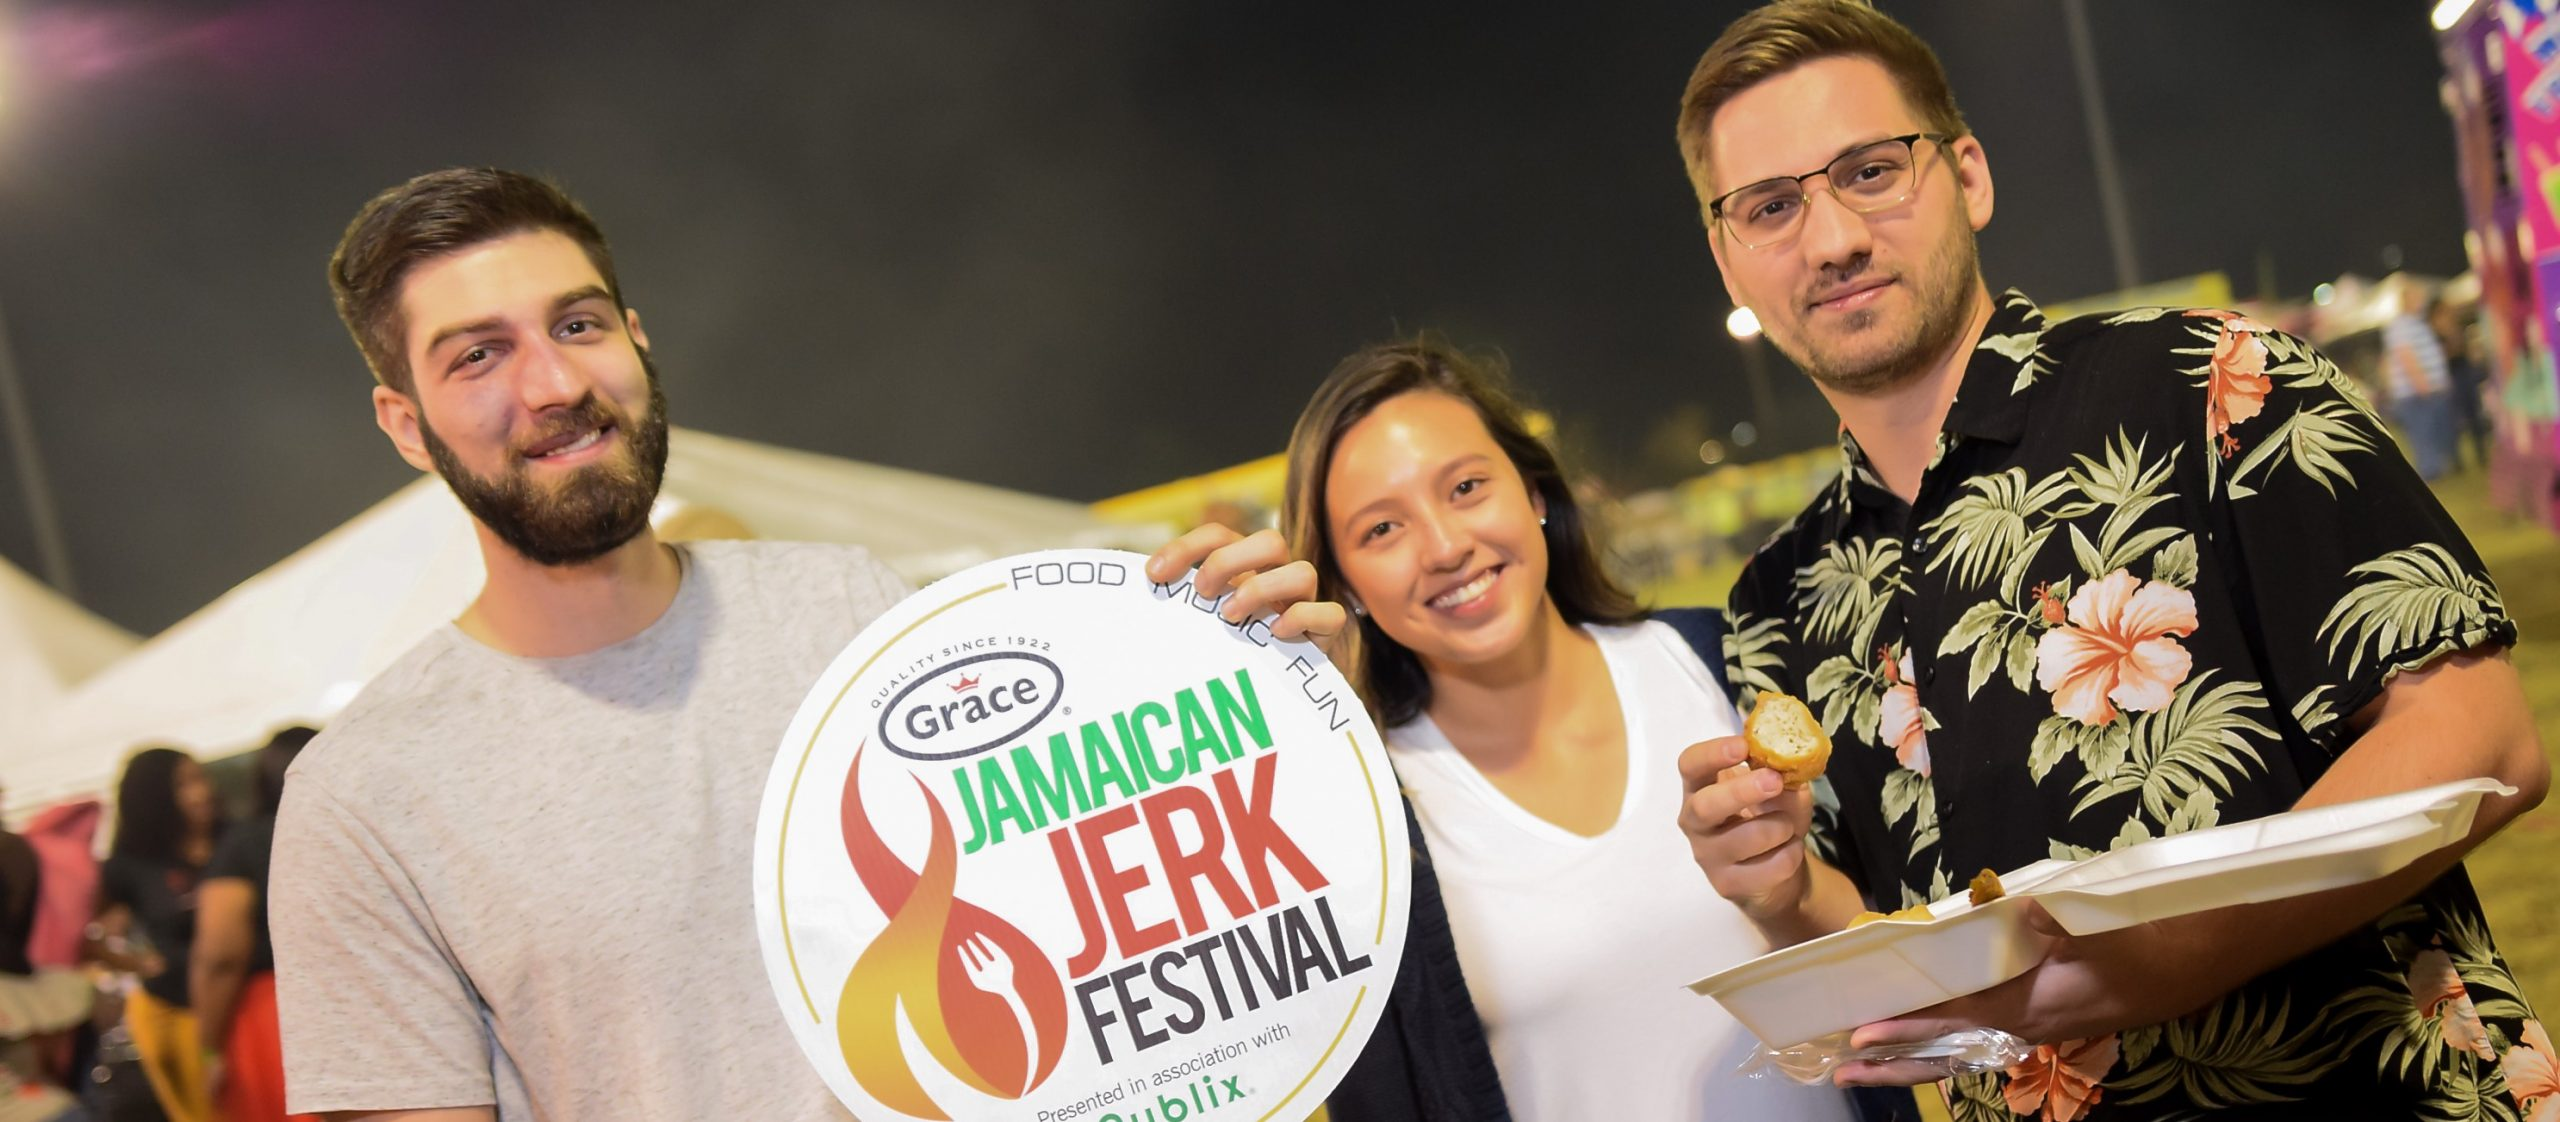 Florida's 20thAnnual Grace Jamaican Jerk Festival Postponed due to Covid Concerns